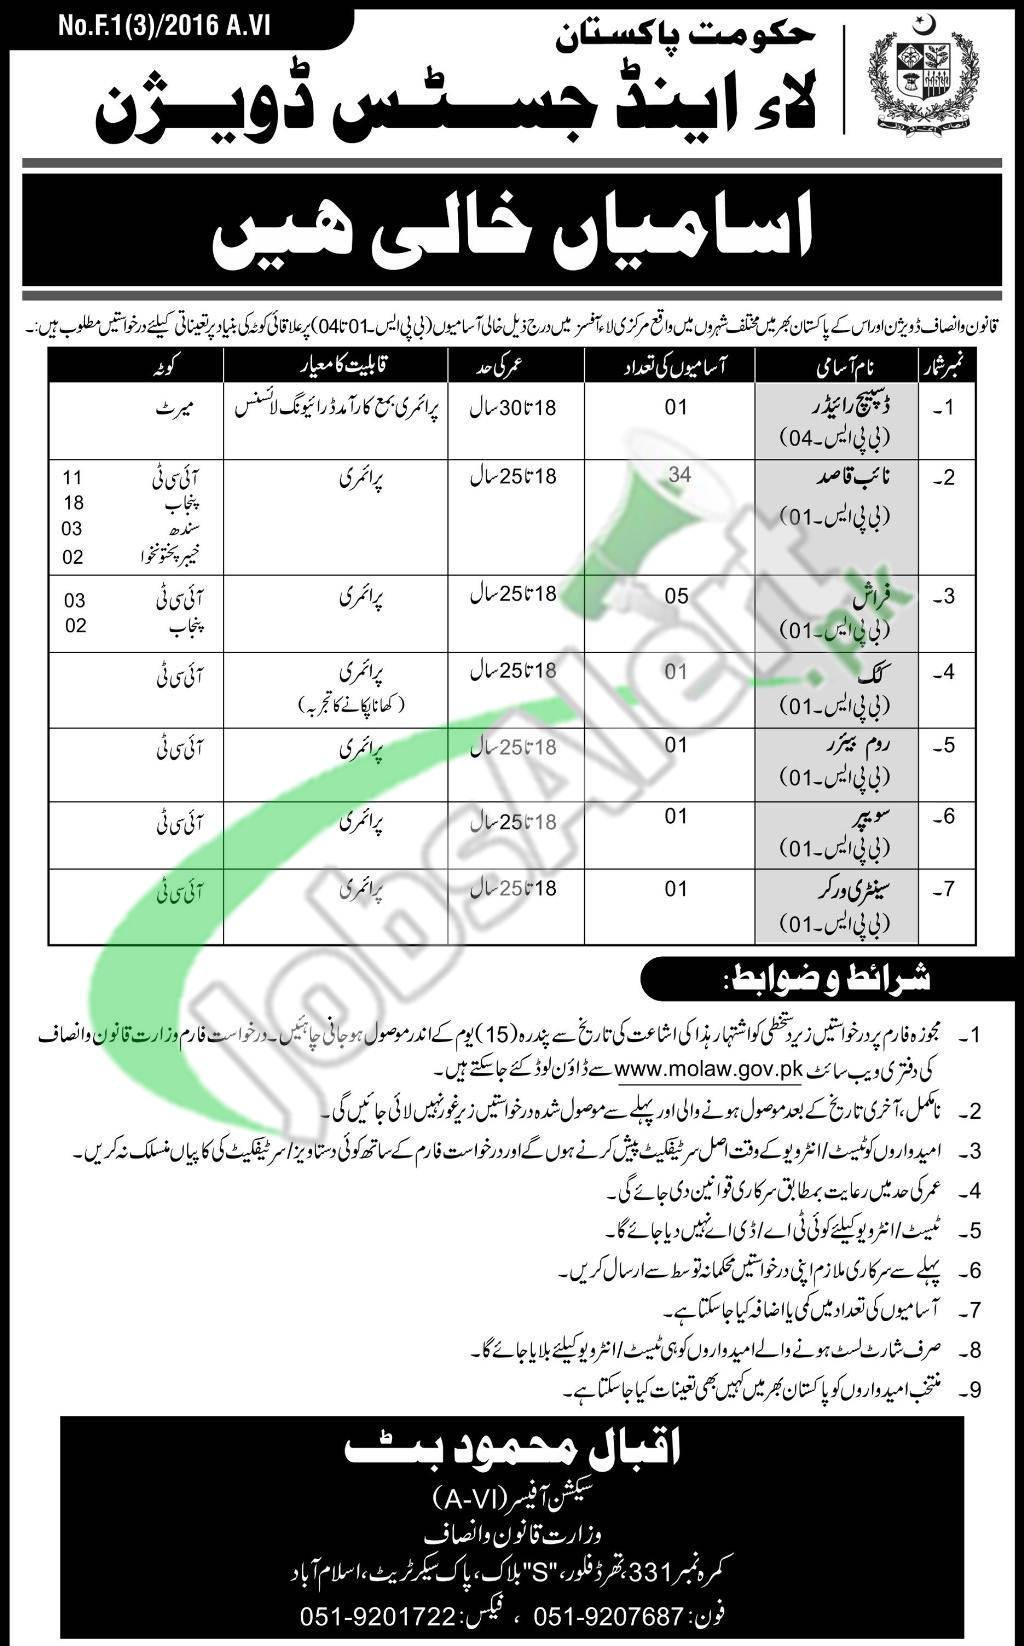 Law and justice division islamabad jobs application form 2016 www view full size click here falaconquin